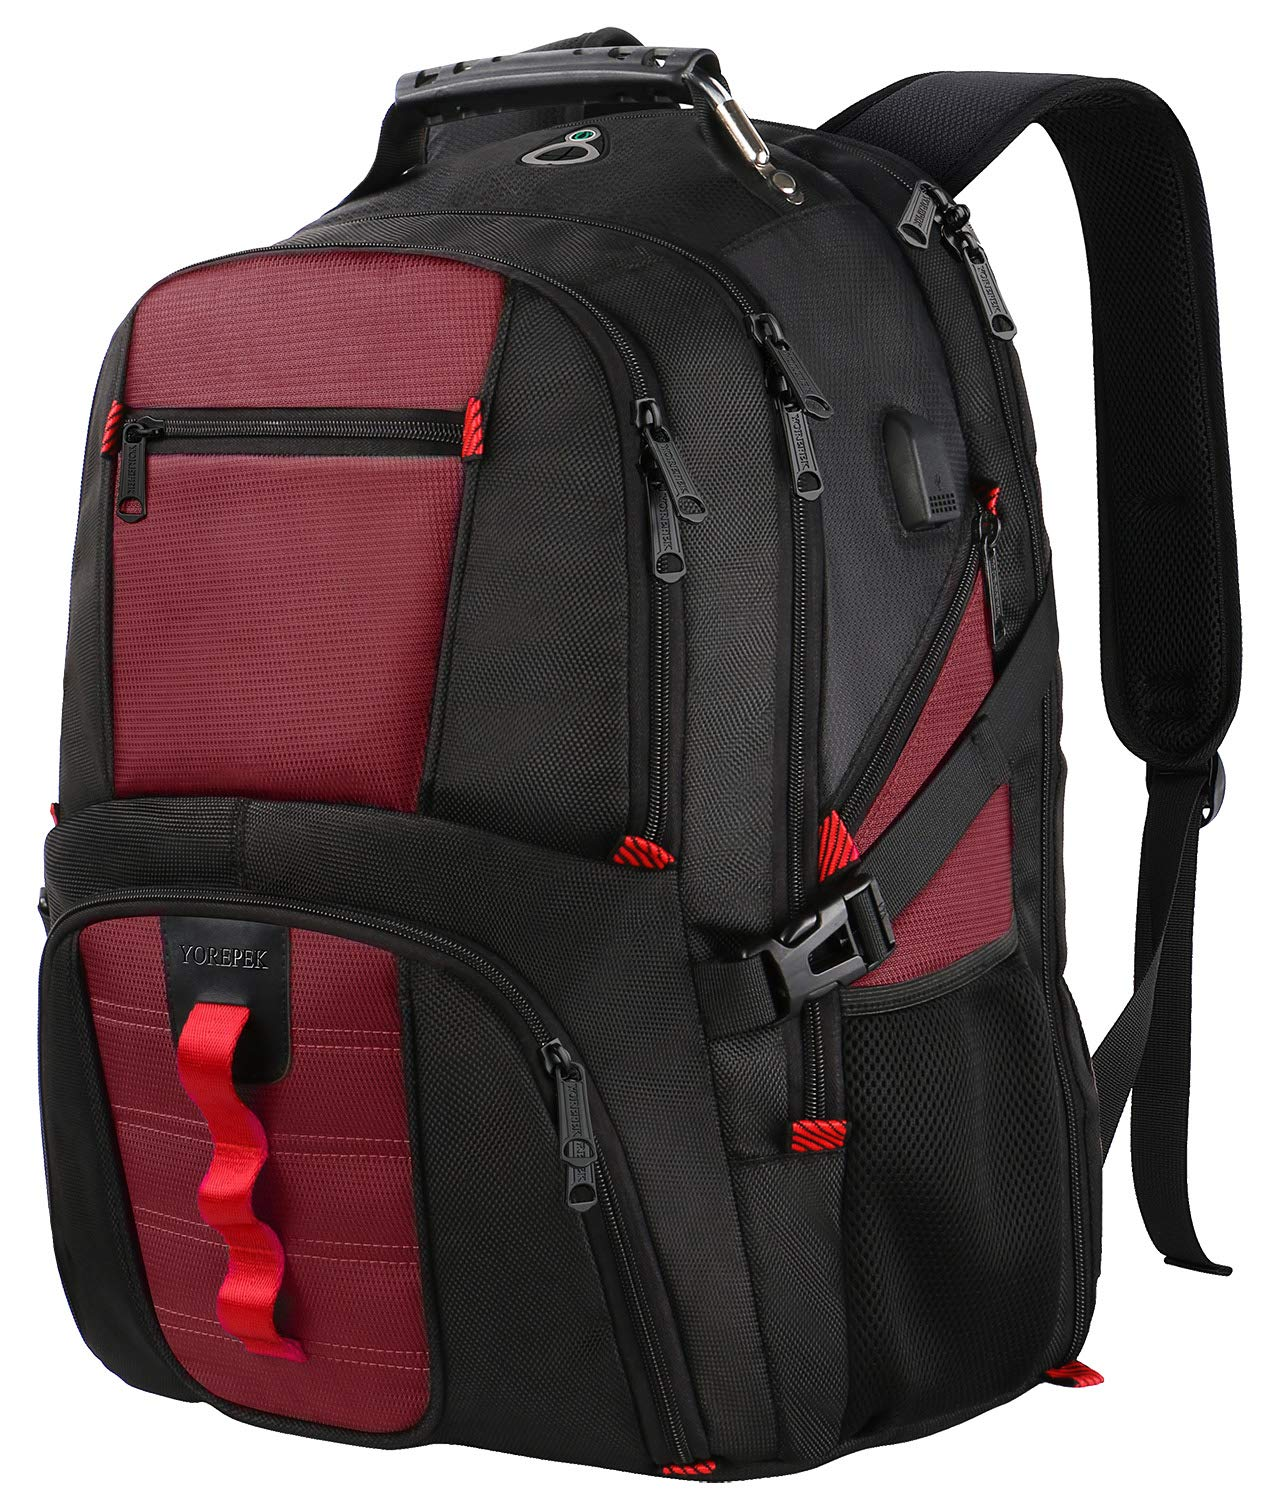 Yorepek Laptop Backpack For Air Travel